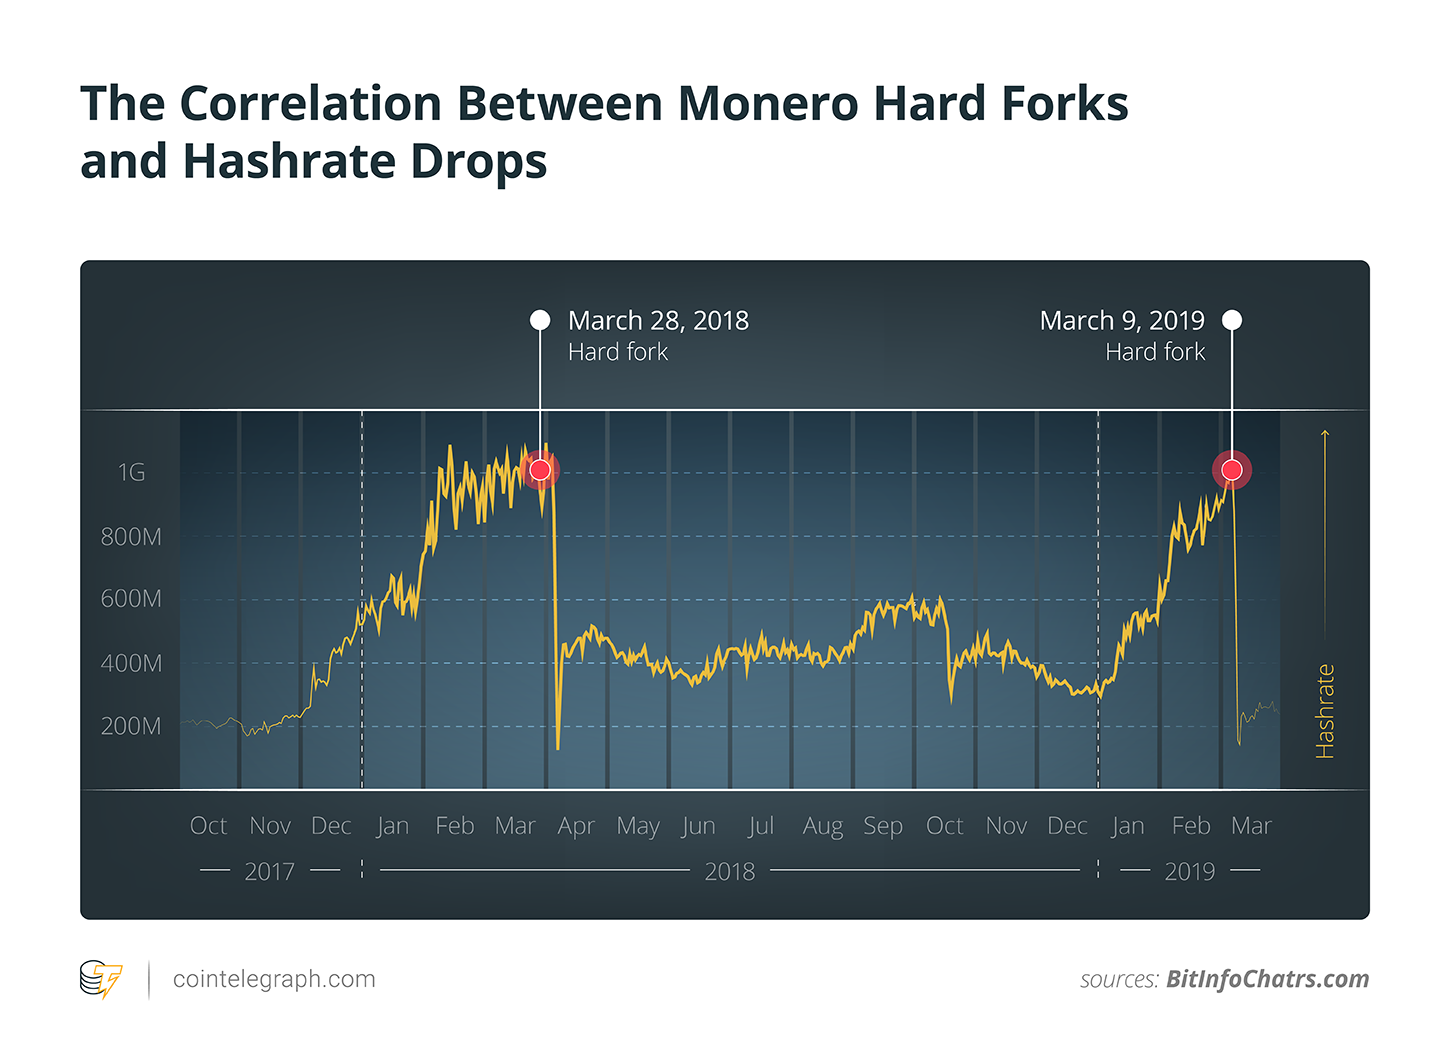 The Correlation Between Monero Hard Forks and Hashrate Drops